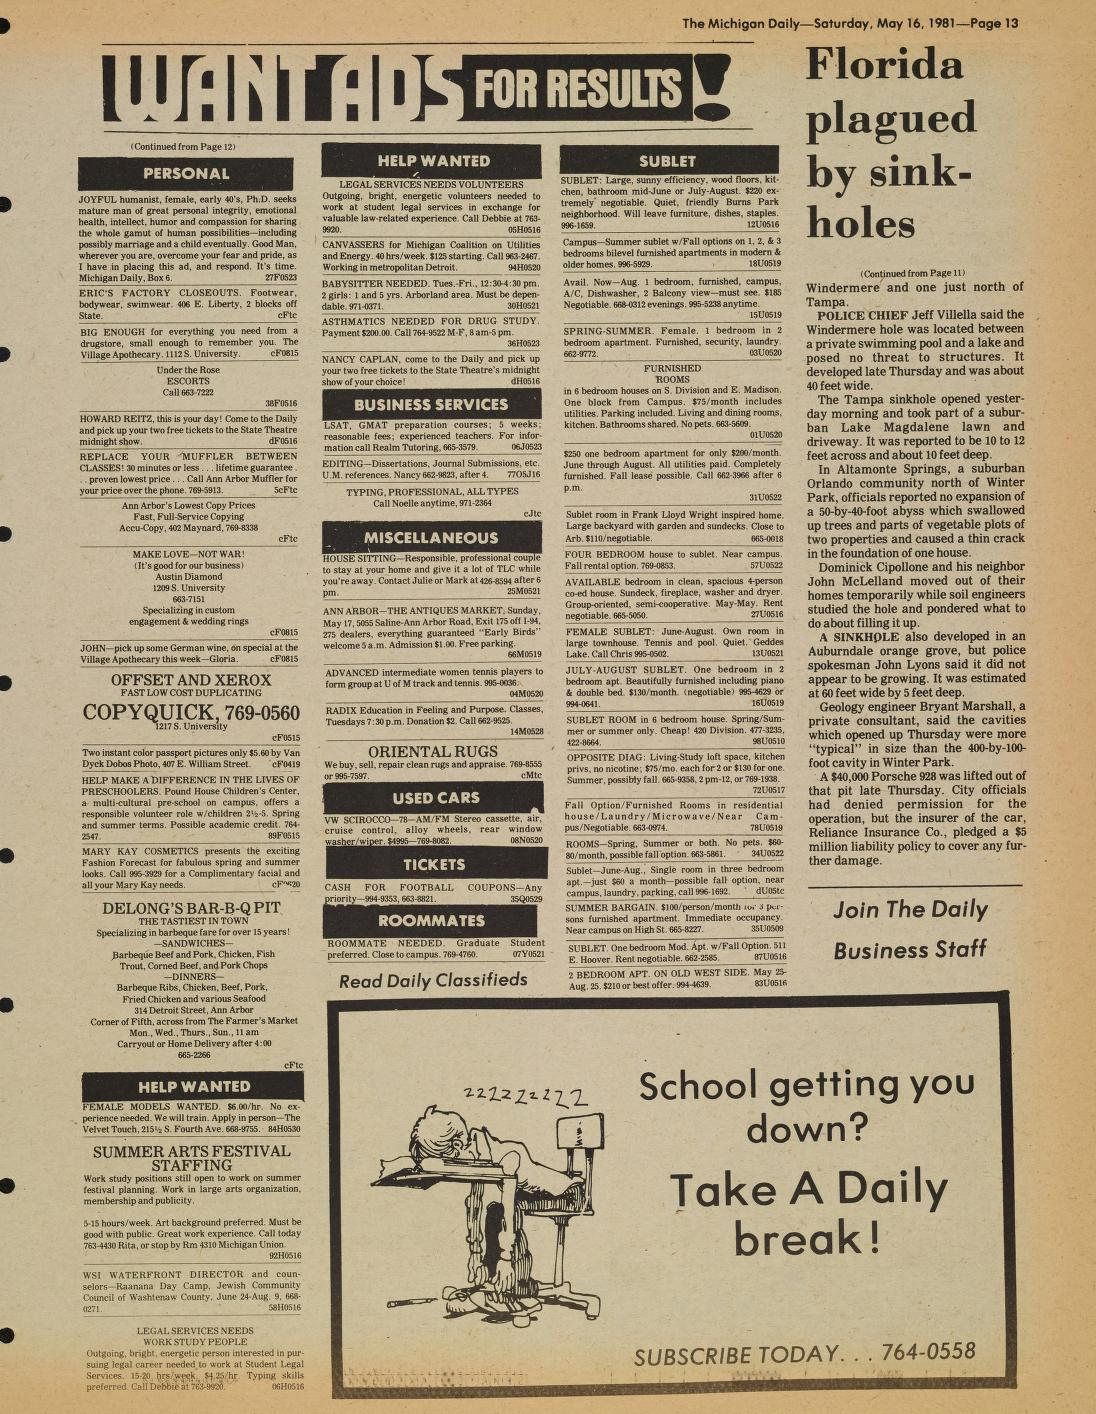 Michigan Daily Digital Archives - May 16, 1981 (vol  91, iss